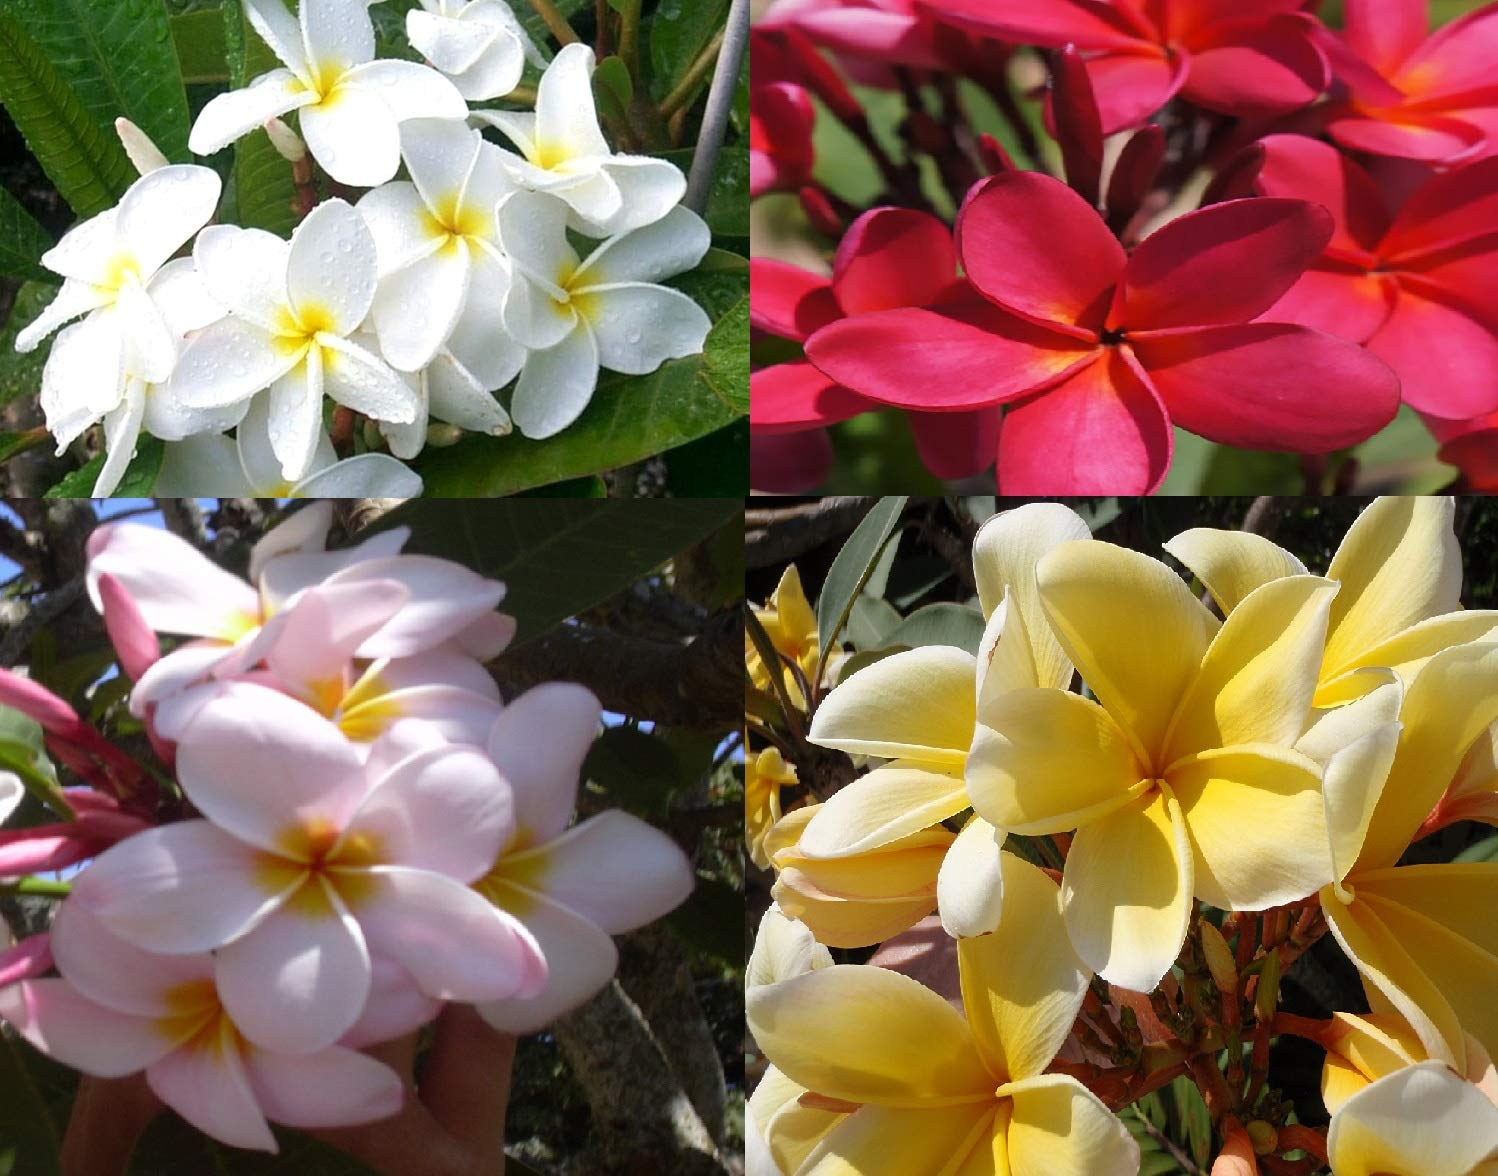 SPRING SPECIAL - Set of 8 100% Hawaiian Plumeria (Frangipani) Plant Cuttings....From a PEST-FREE certified Hawaiian nursery with the proper U.S. Department of Agriculture stamp.